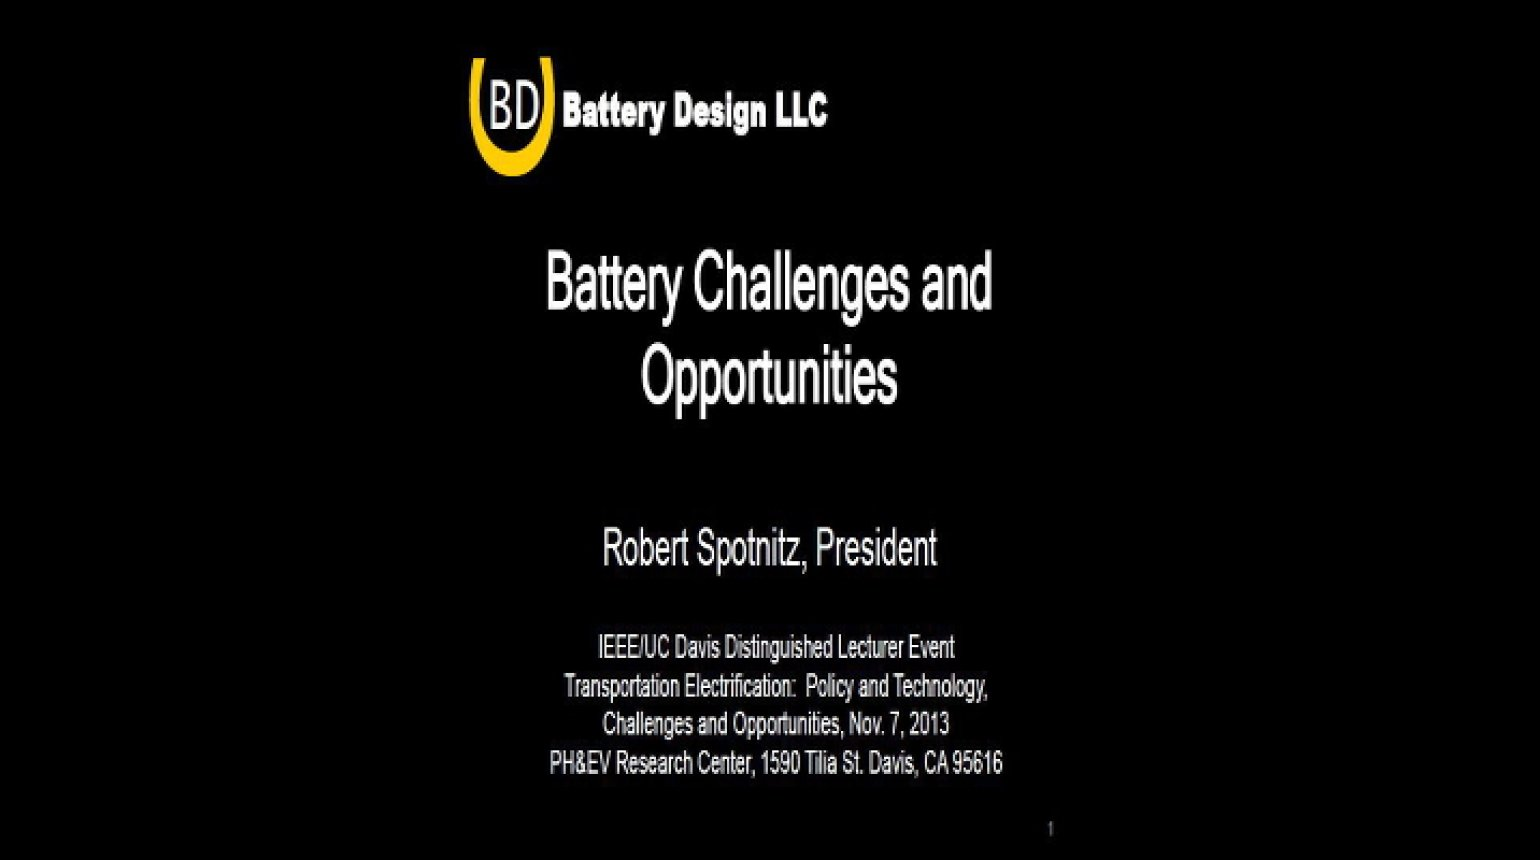 Video - Battery Challenges and Opportunities